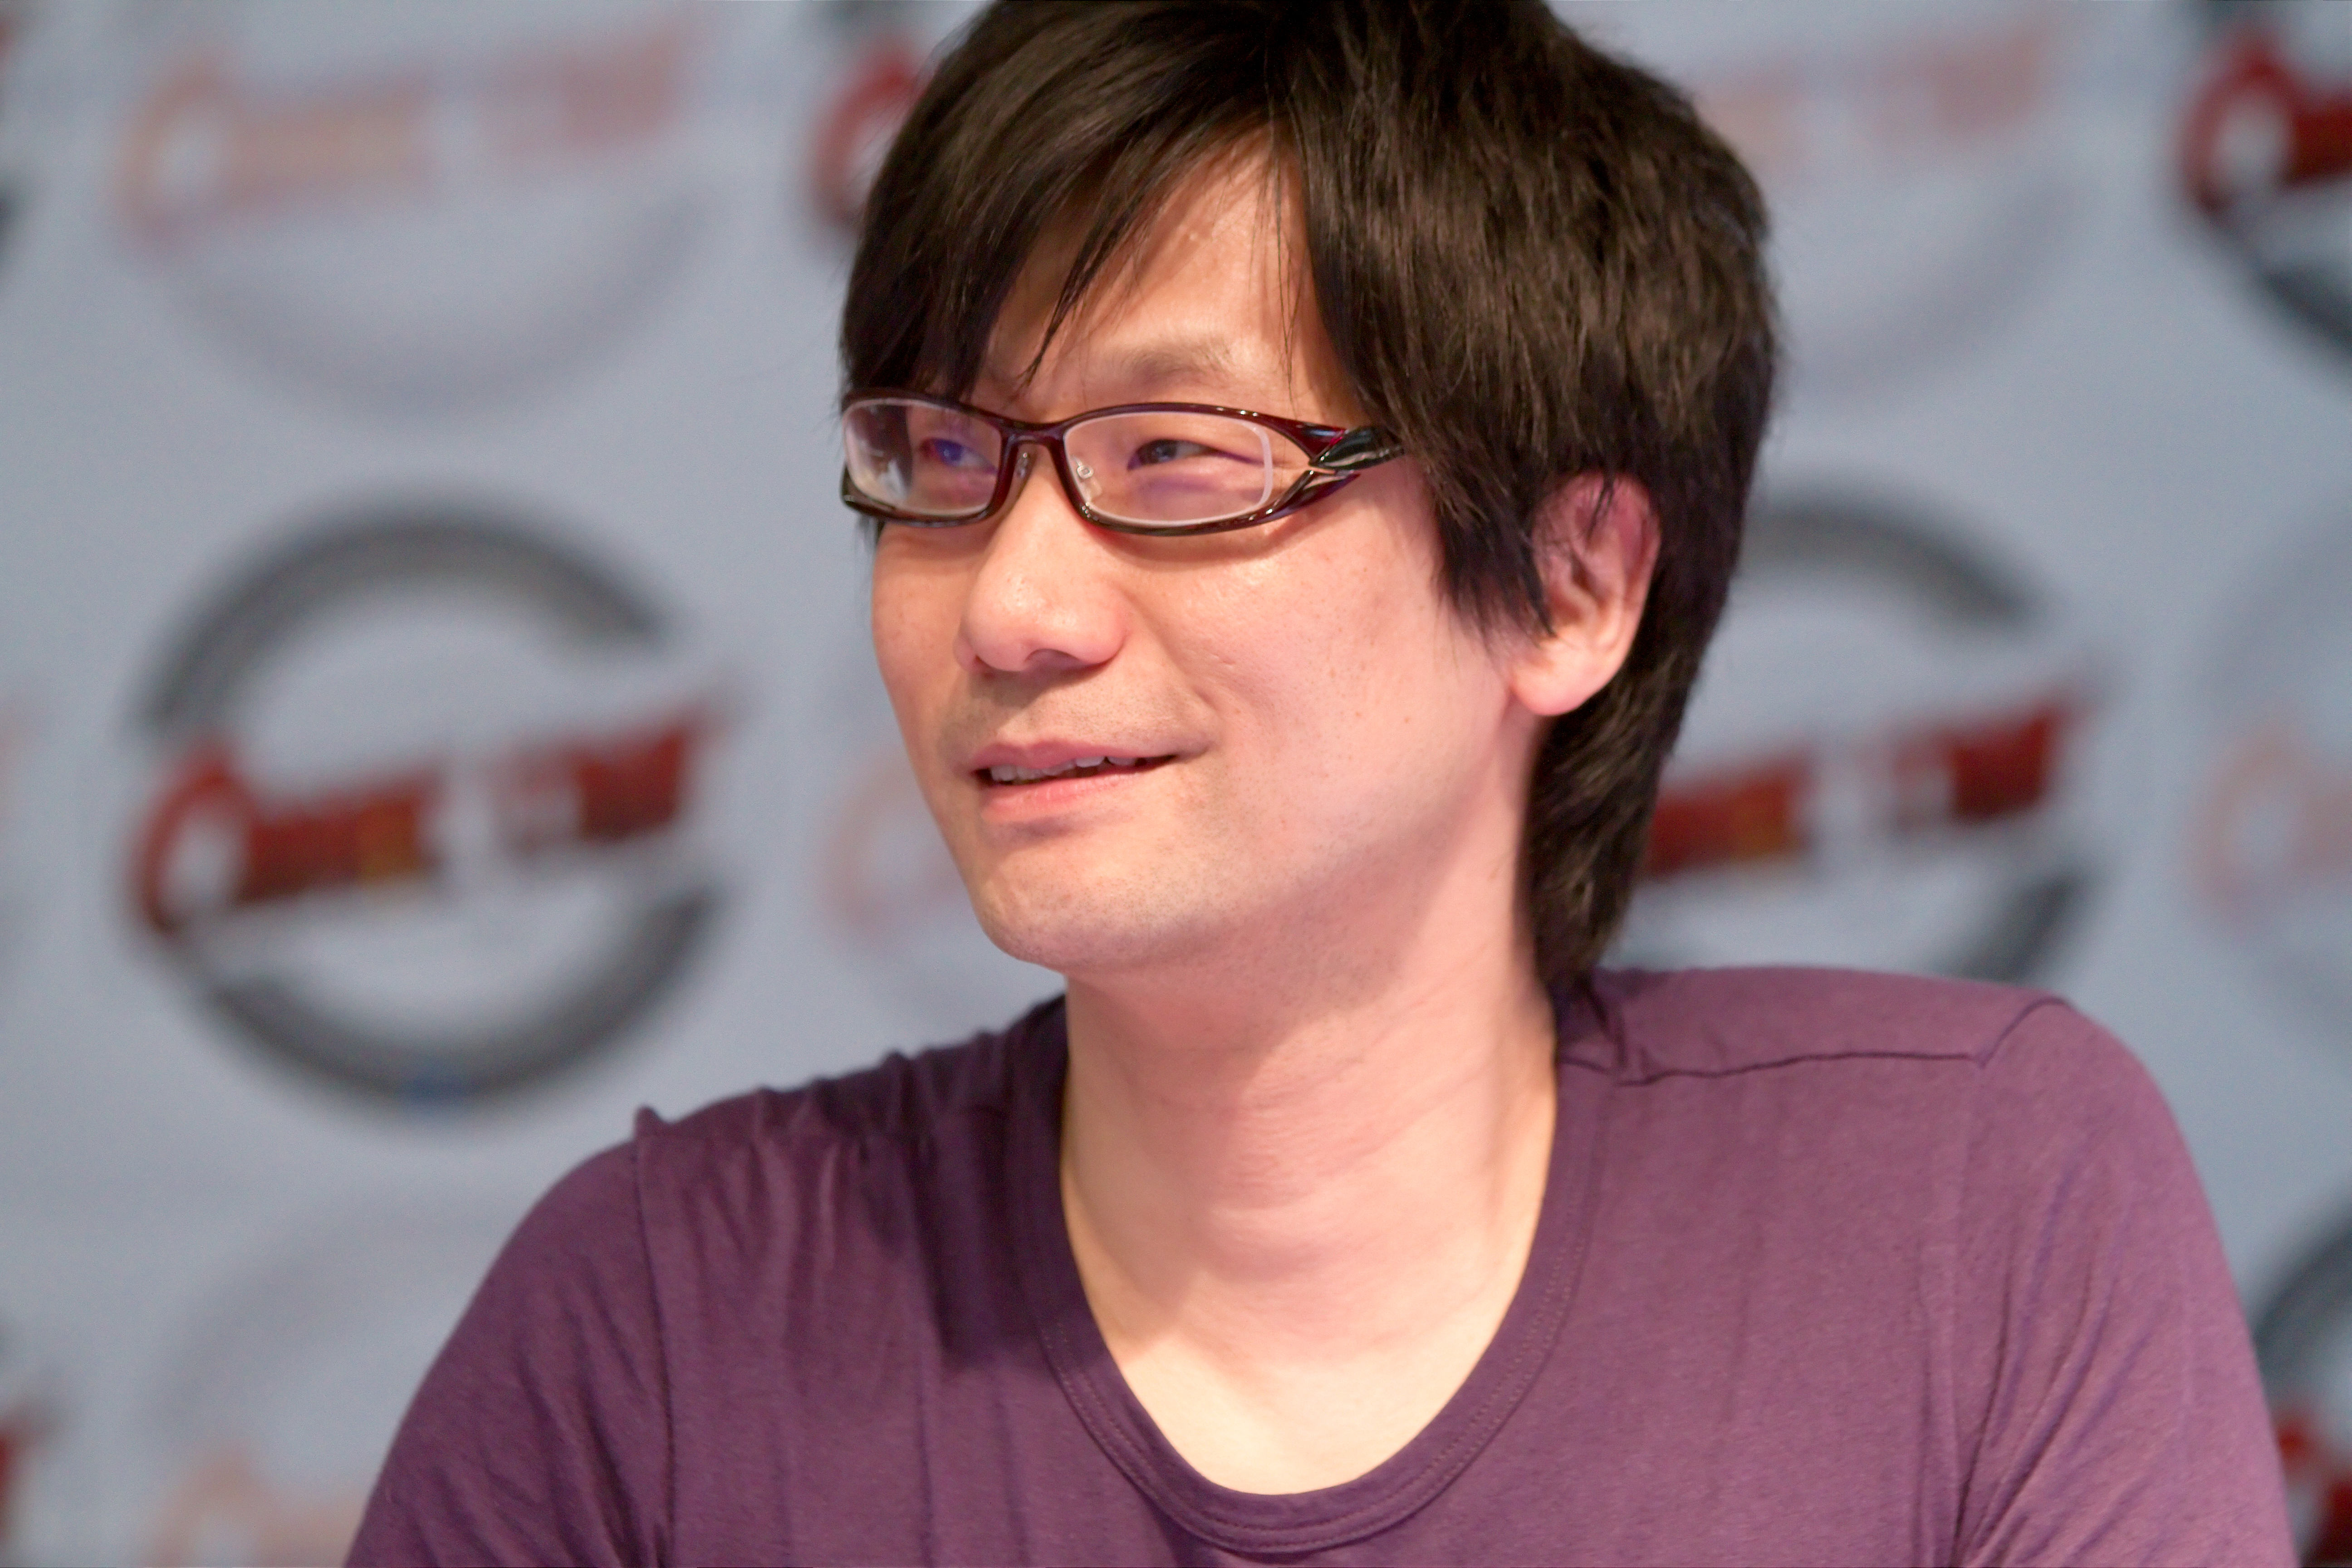 Hideo Kojima Has Now Officially Left Konami And Kojima Productions UNILAD Hideo Kojima 20100702 Japan Expo 154391